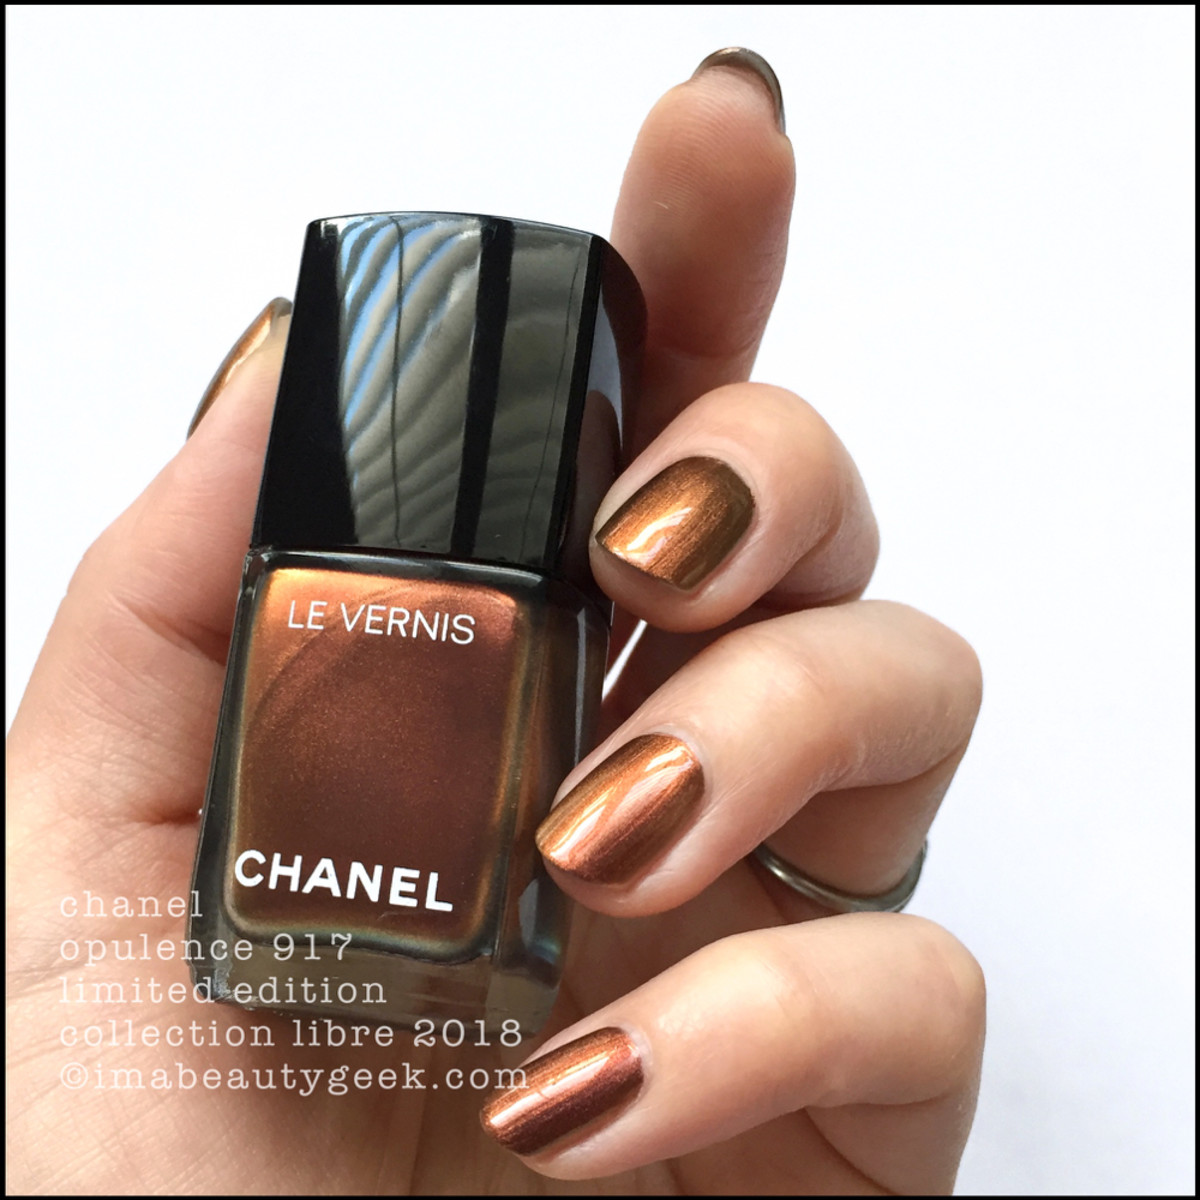 Chanel Opulence 917 Le Vernis - Chanel Collection Libre 2018 Nail Polish